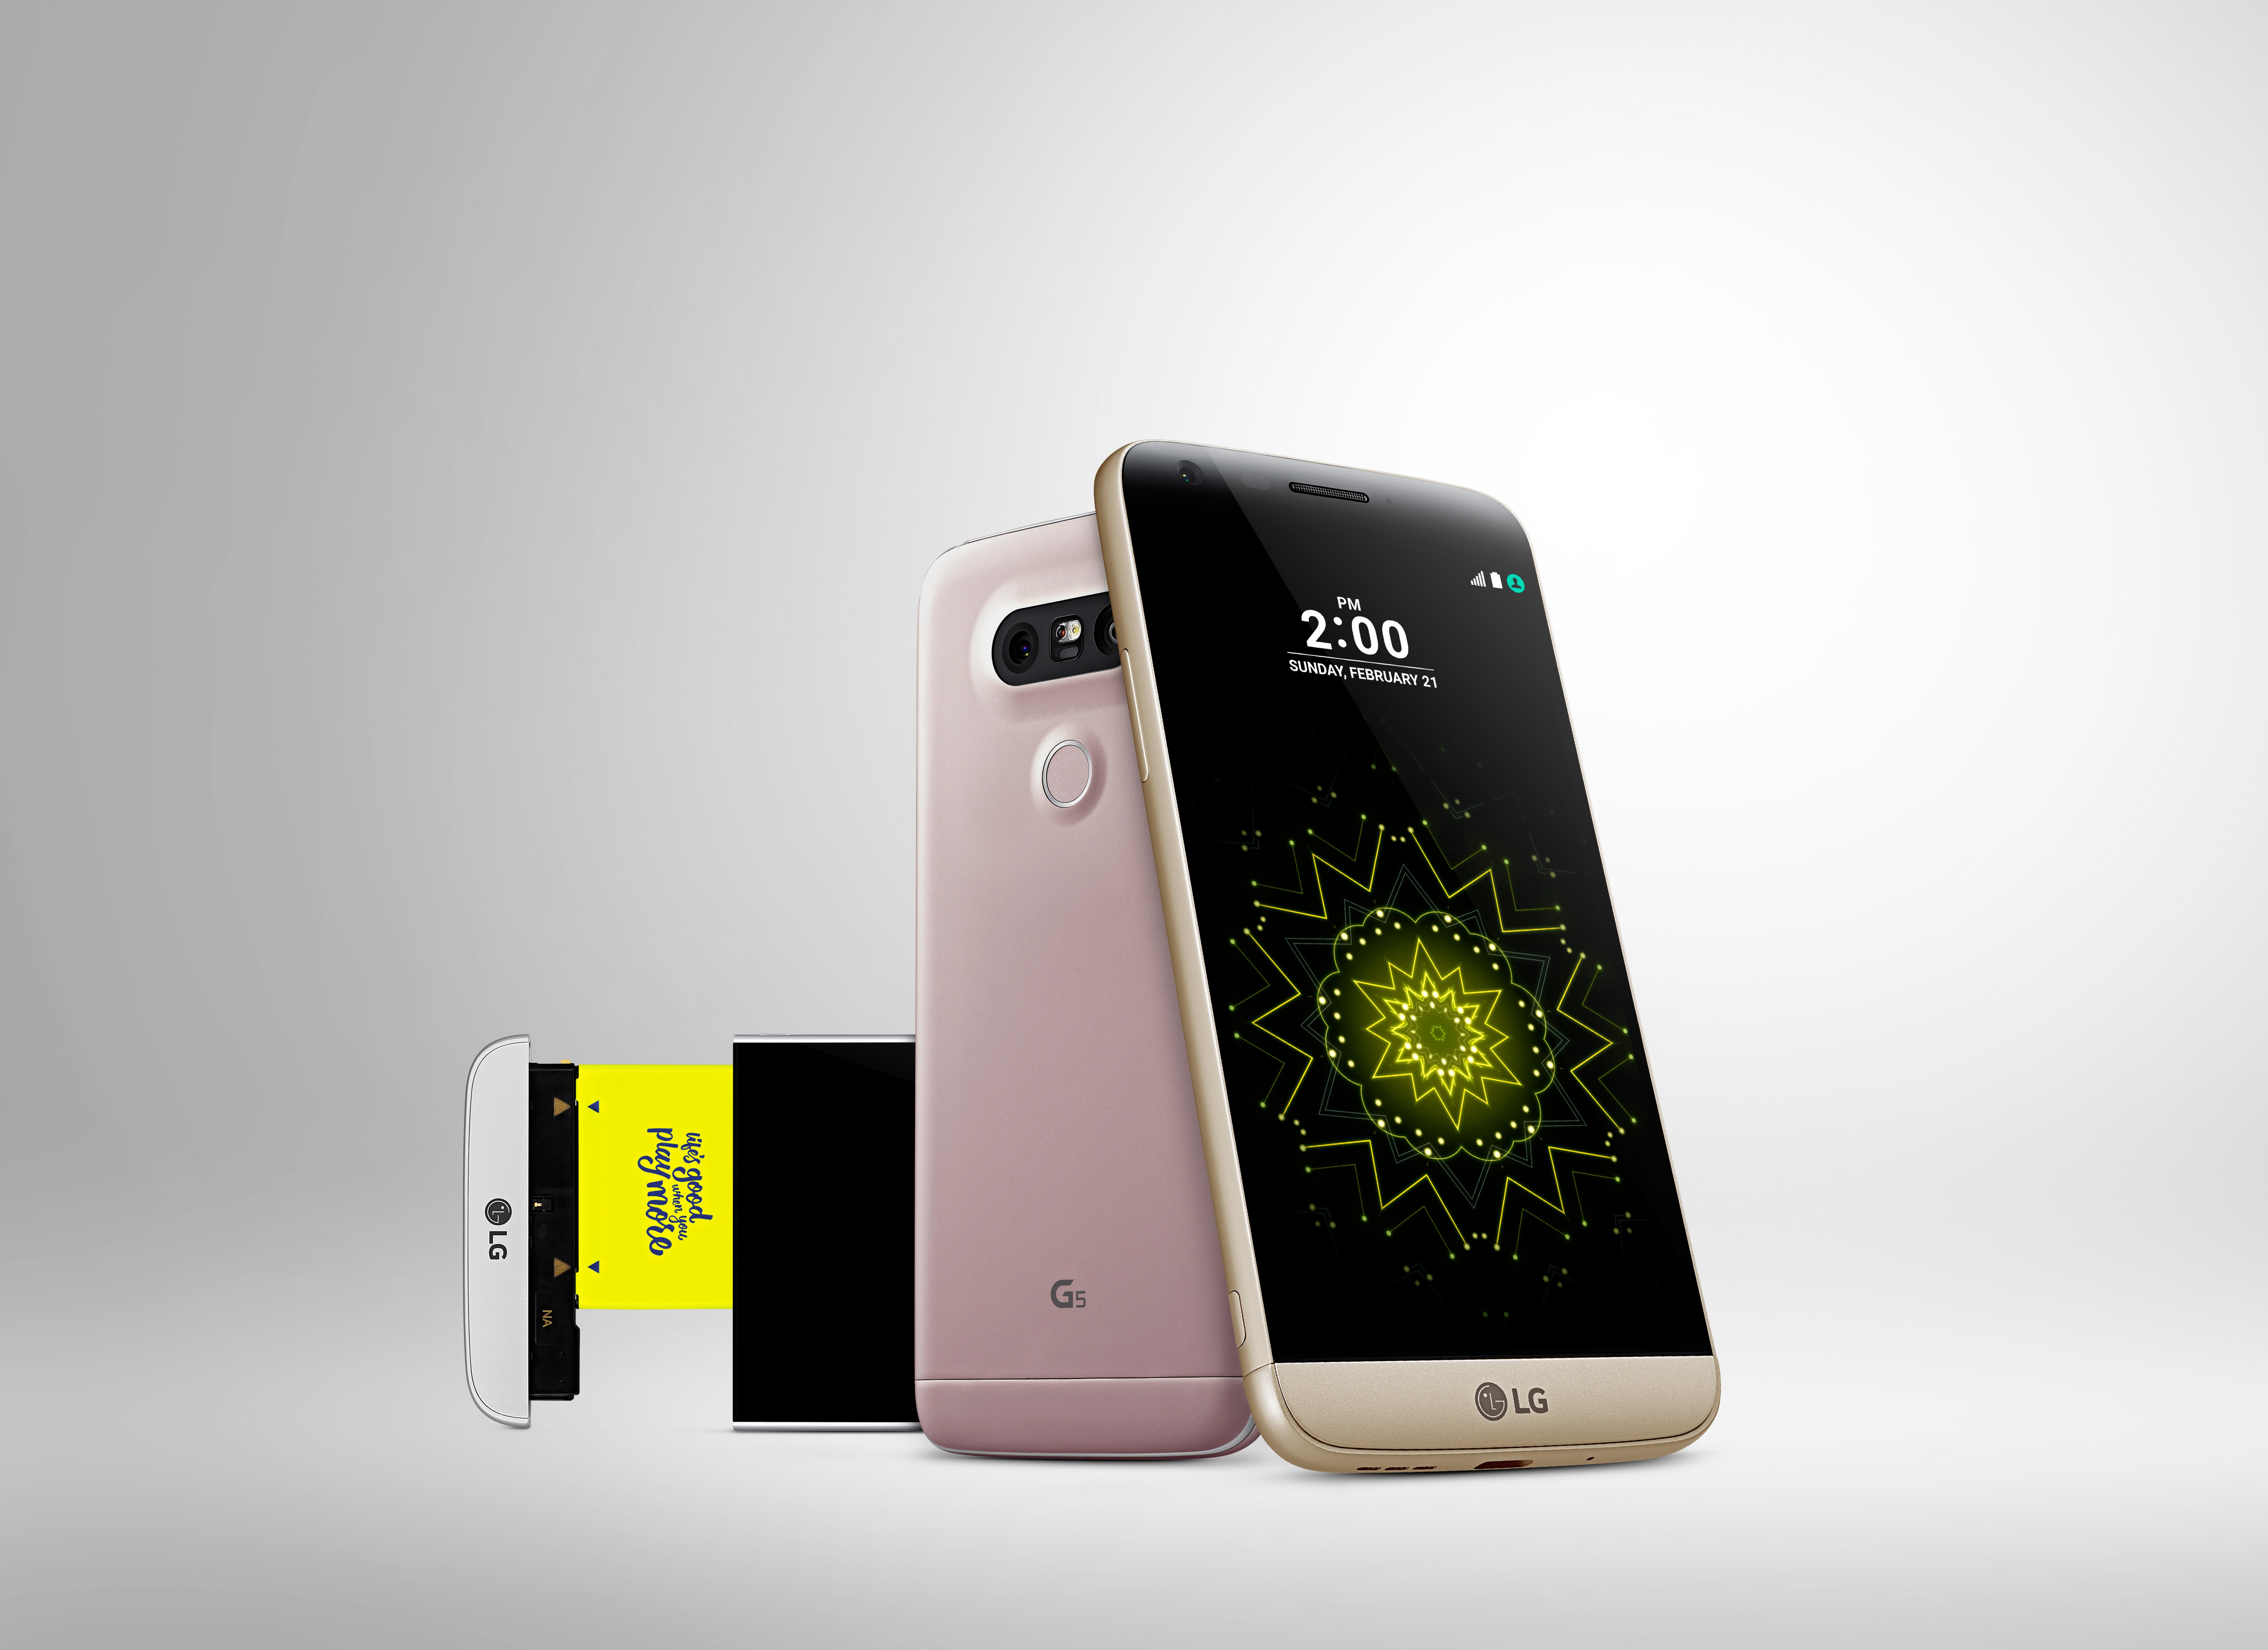 The front and back view of the LG G5 in Silver, Pink and Gold, with the Silver LG G5